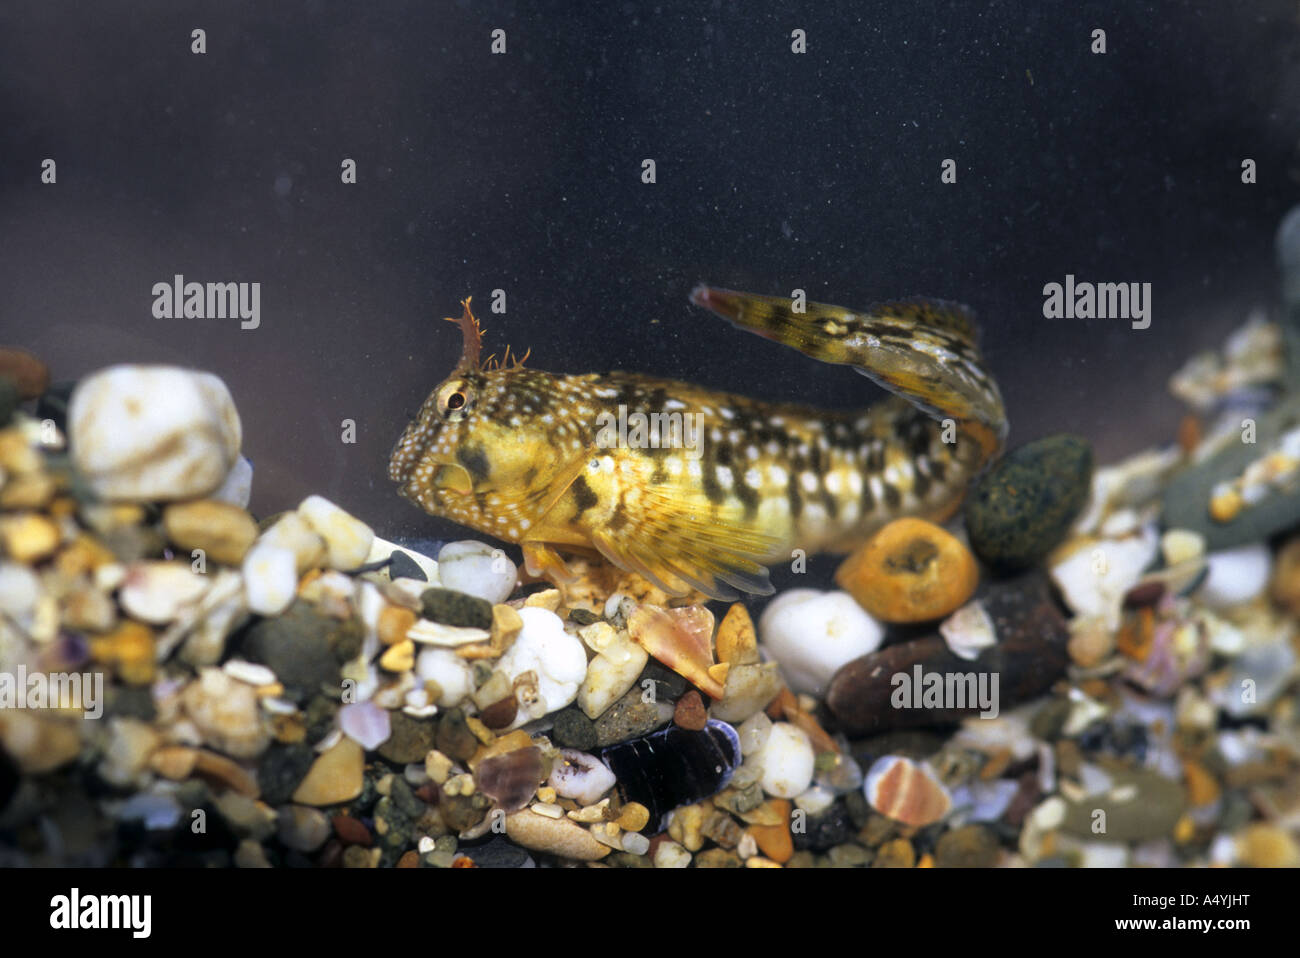 Montagu s blenny Coryphoblennius galerita photographed in a small tank - Stock Image